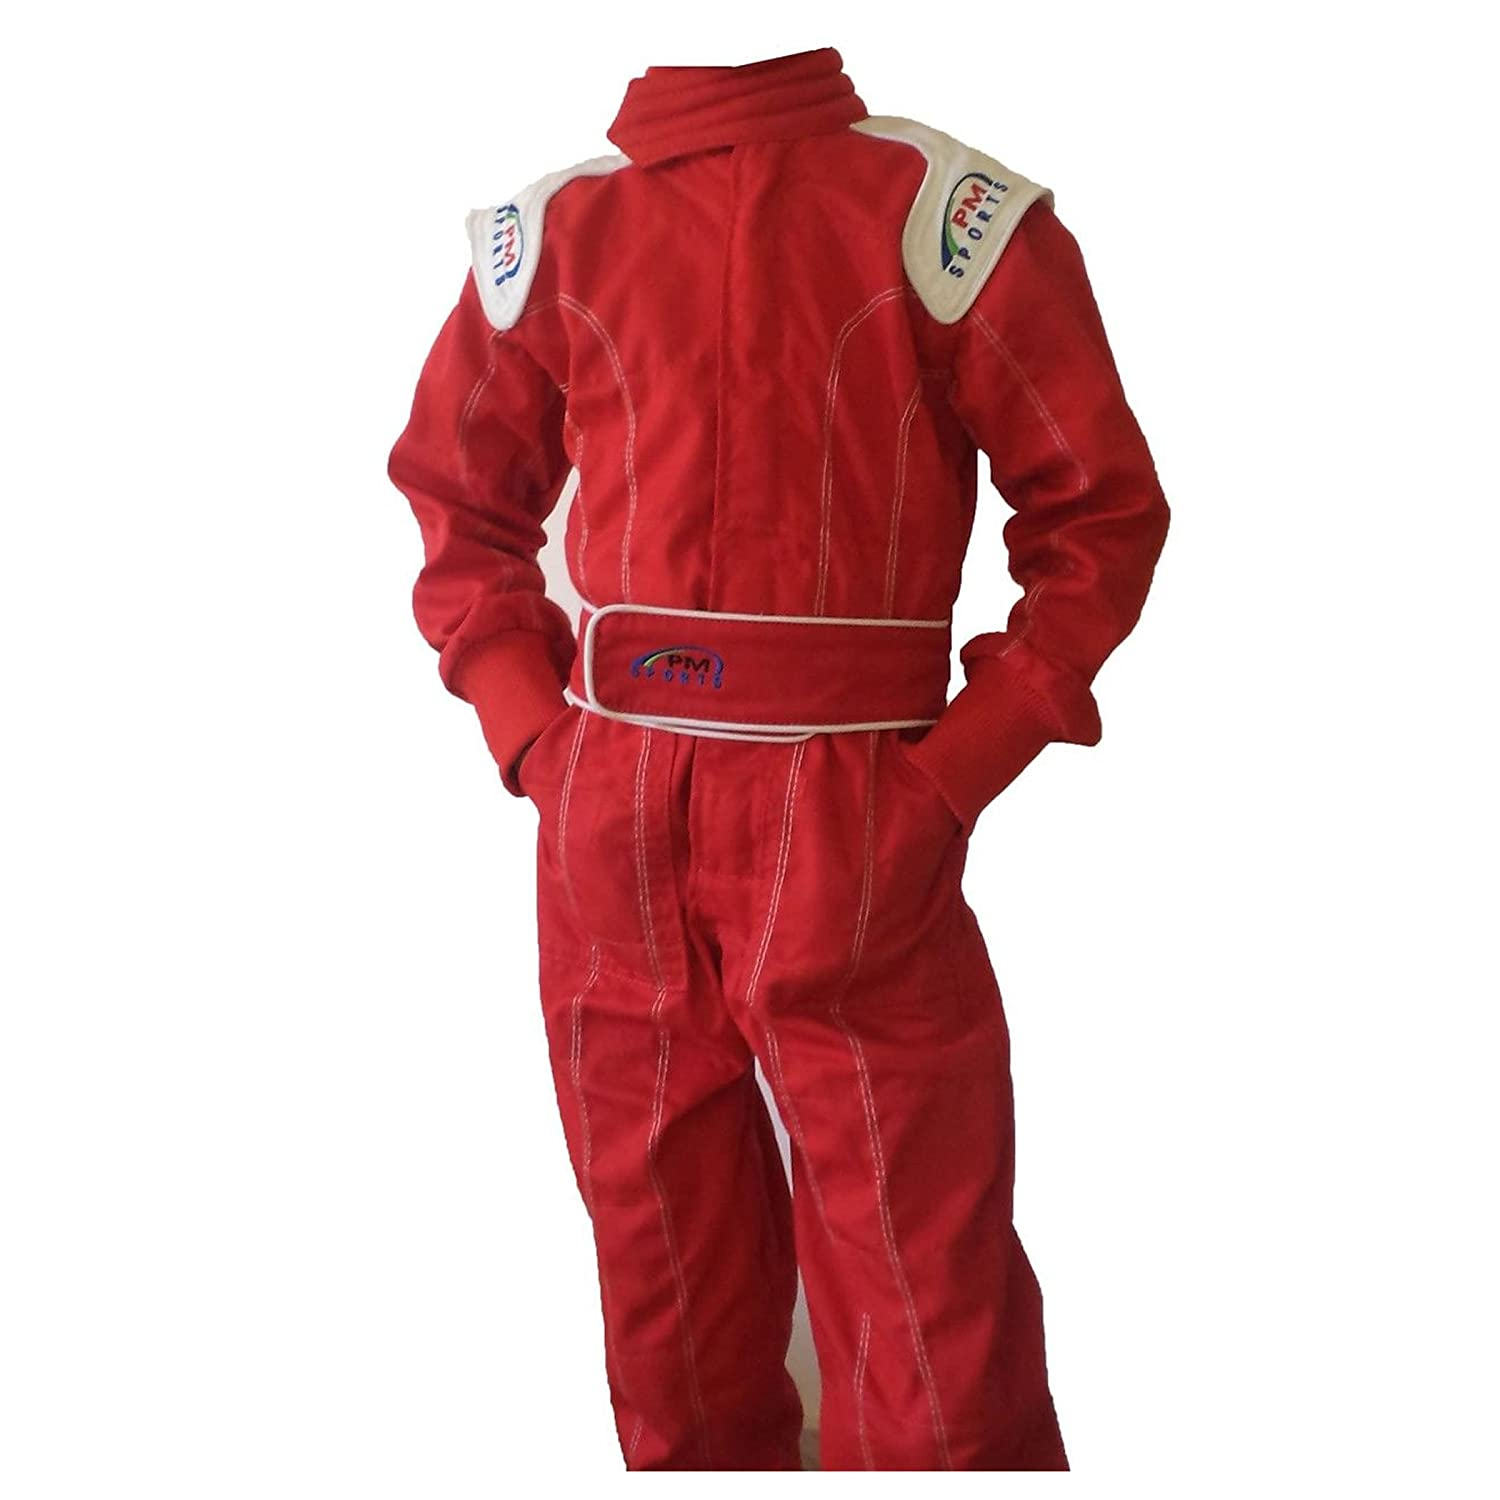 Kids/Children New Karting/Race Overall/Suits Polycoton Indoor & Outdoor PM Sports